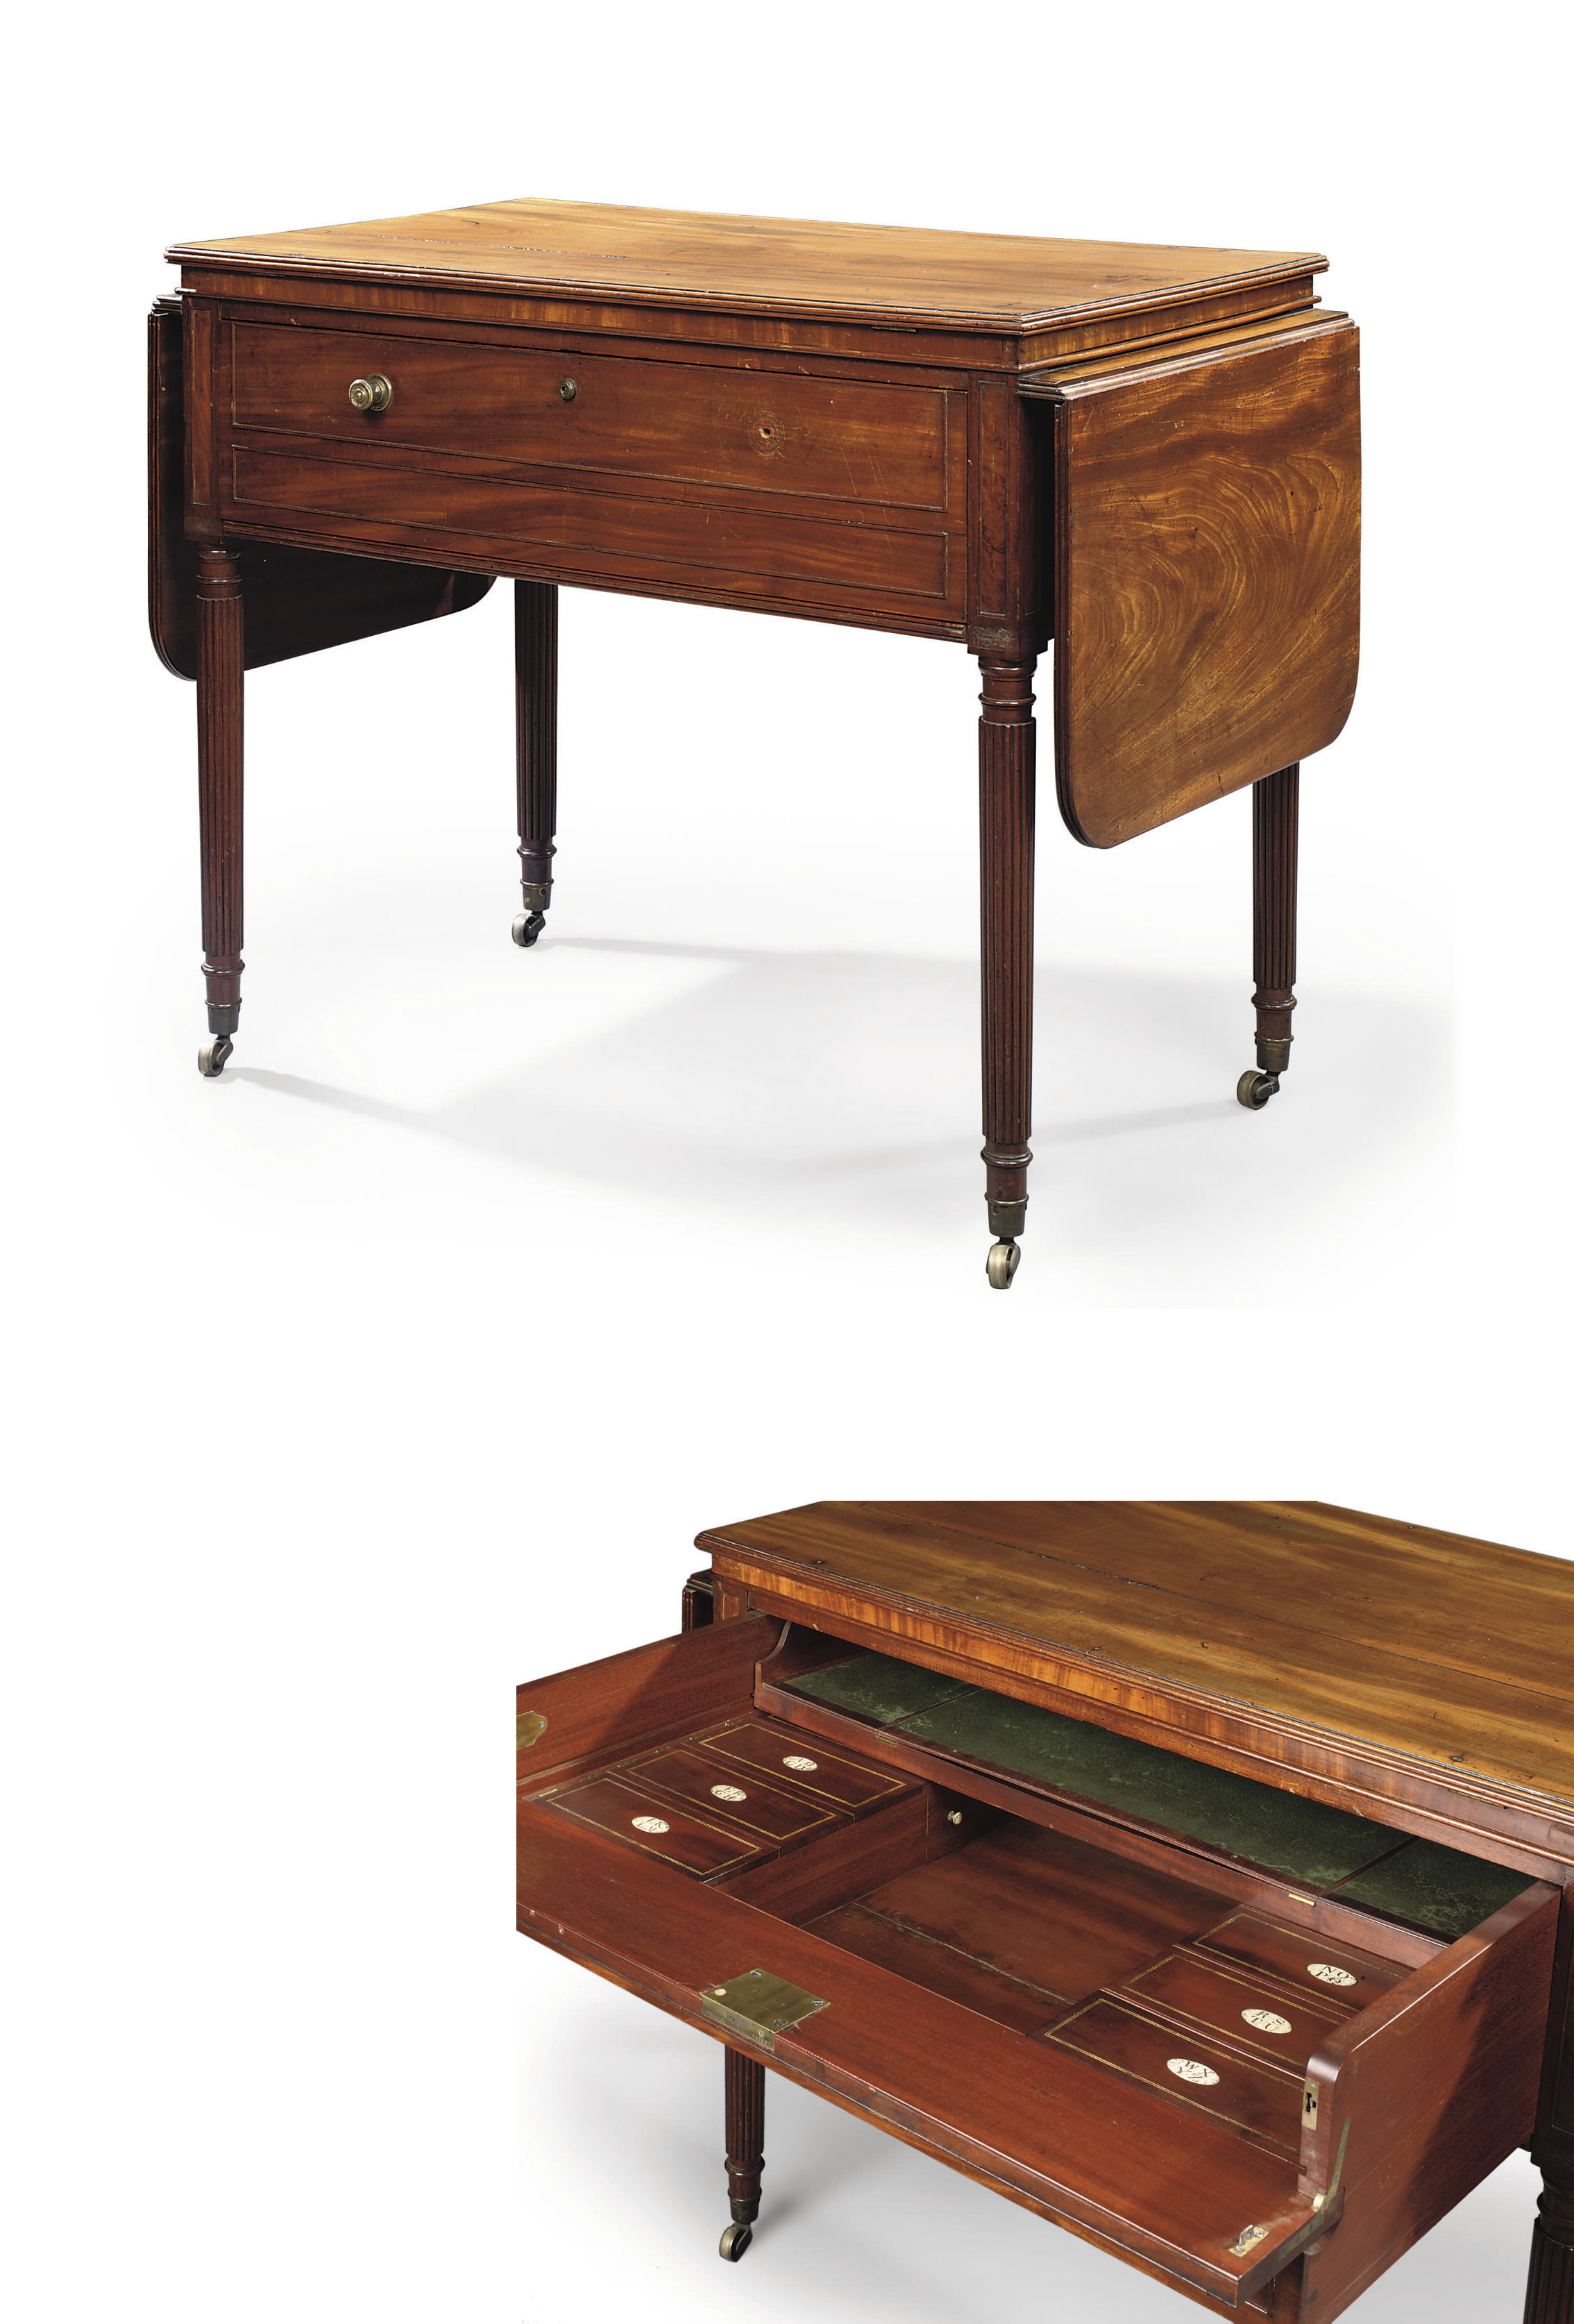 A REGENCY MAHOGANY ARCHITECT'S